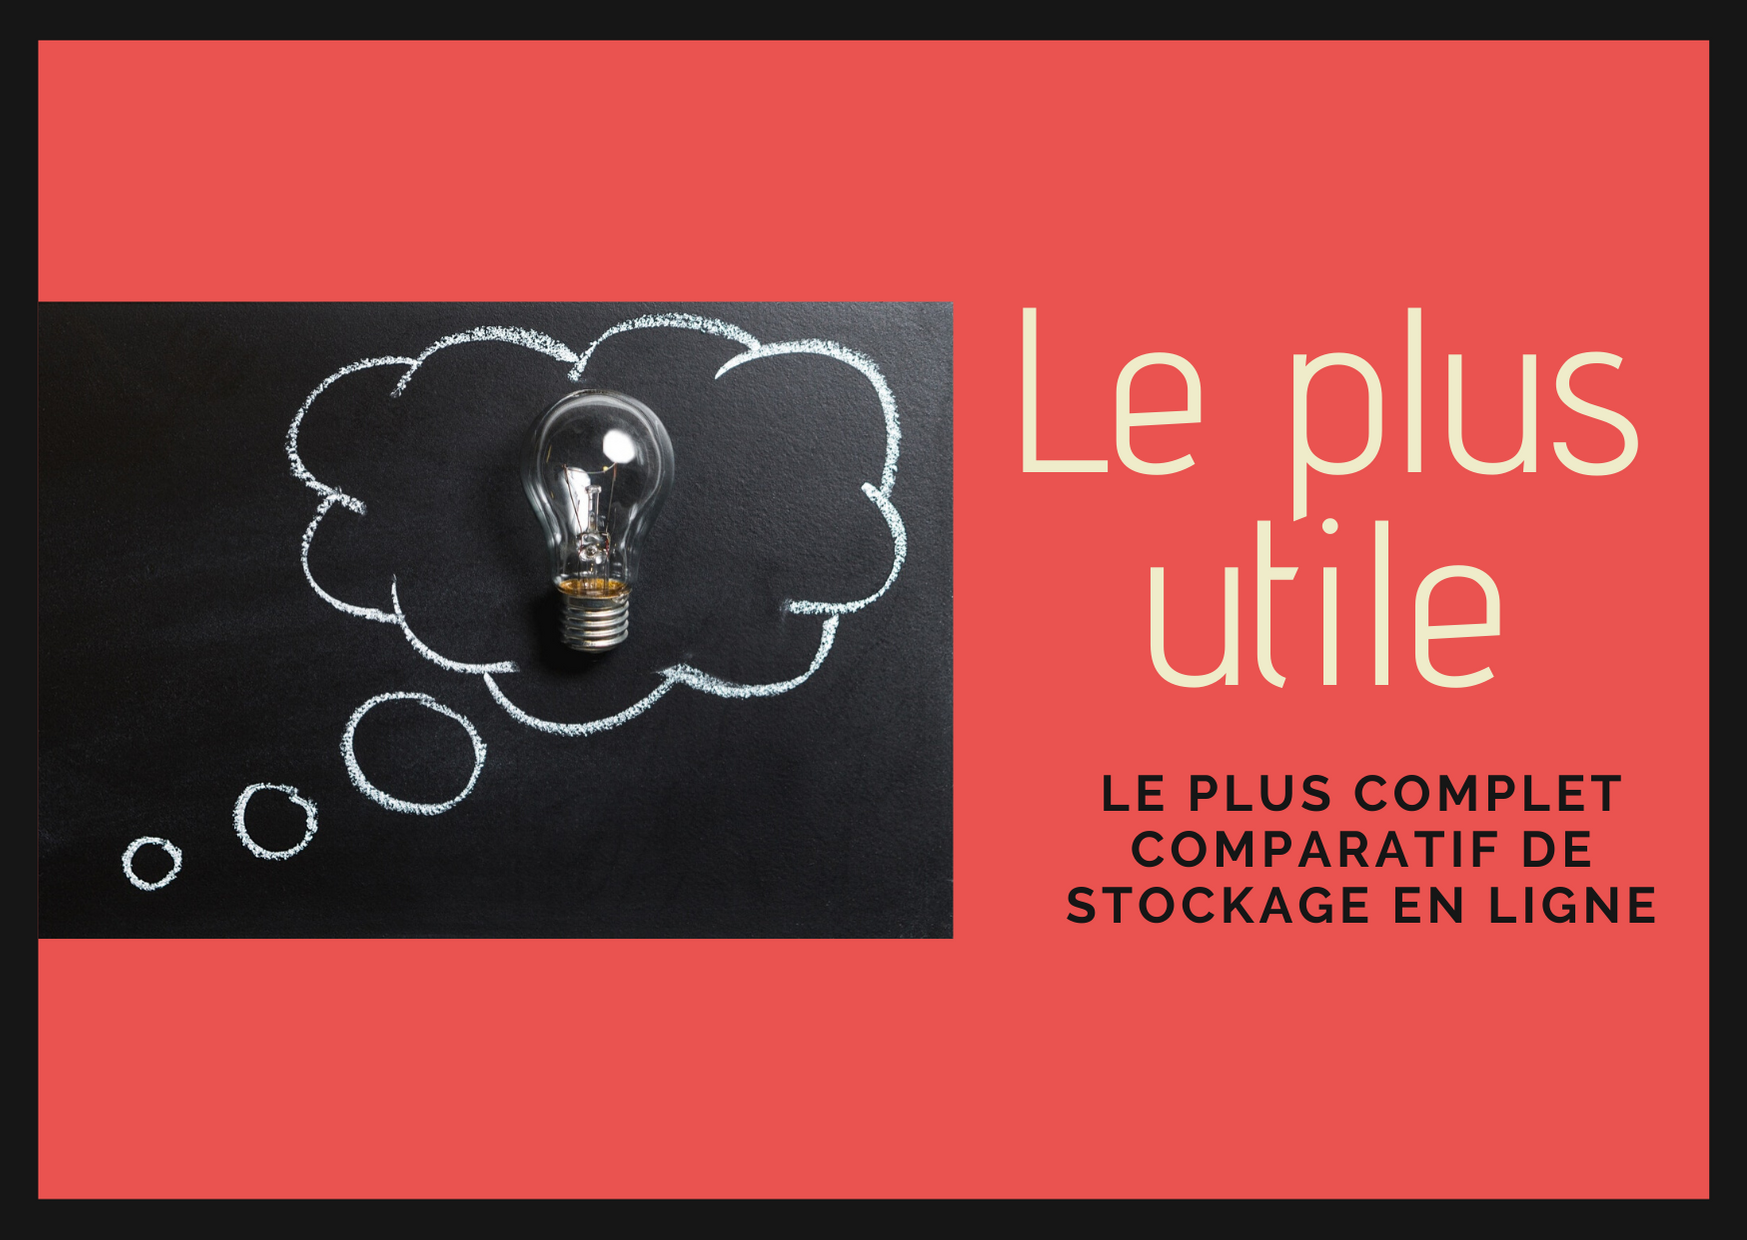 comparatif-stockage-en-ligne